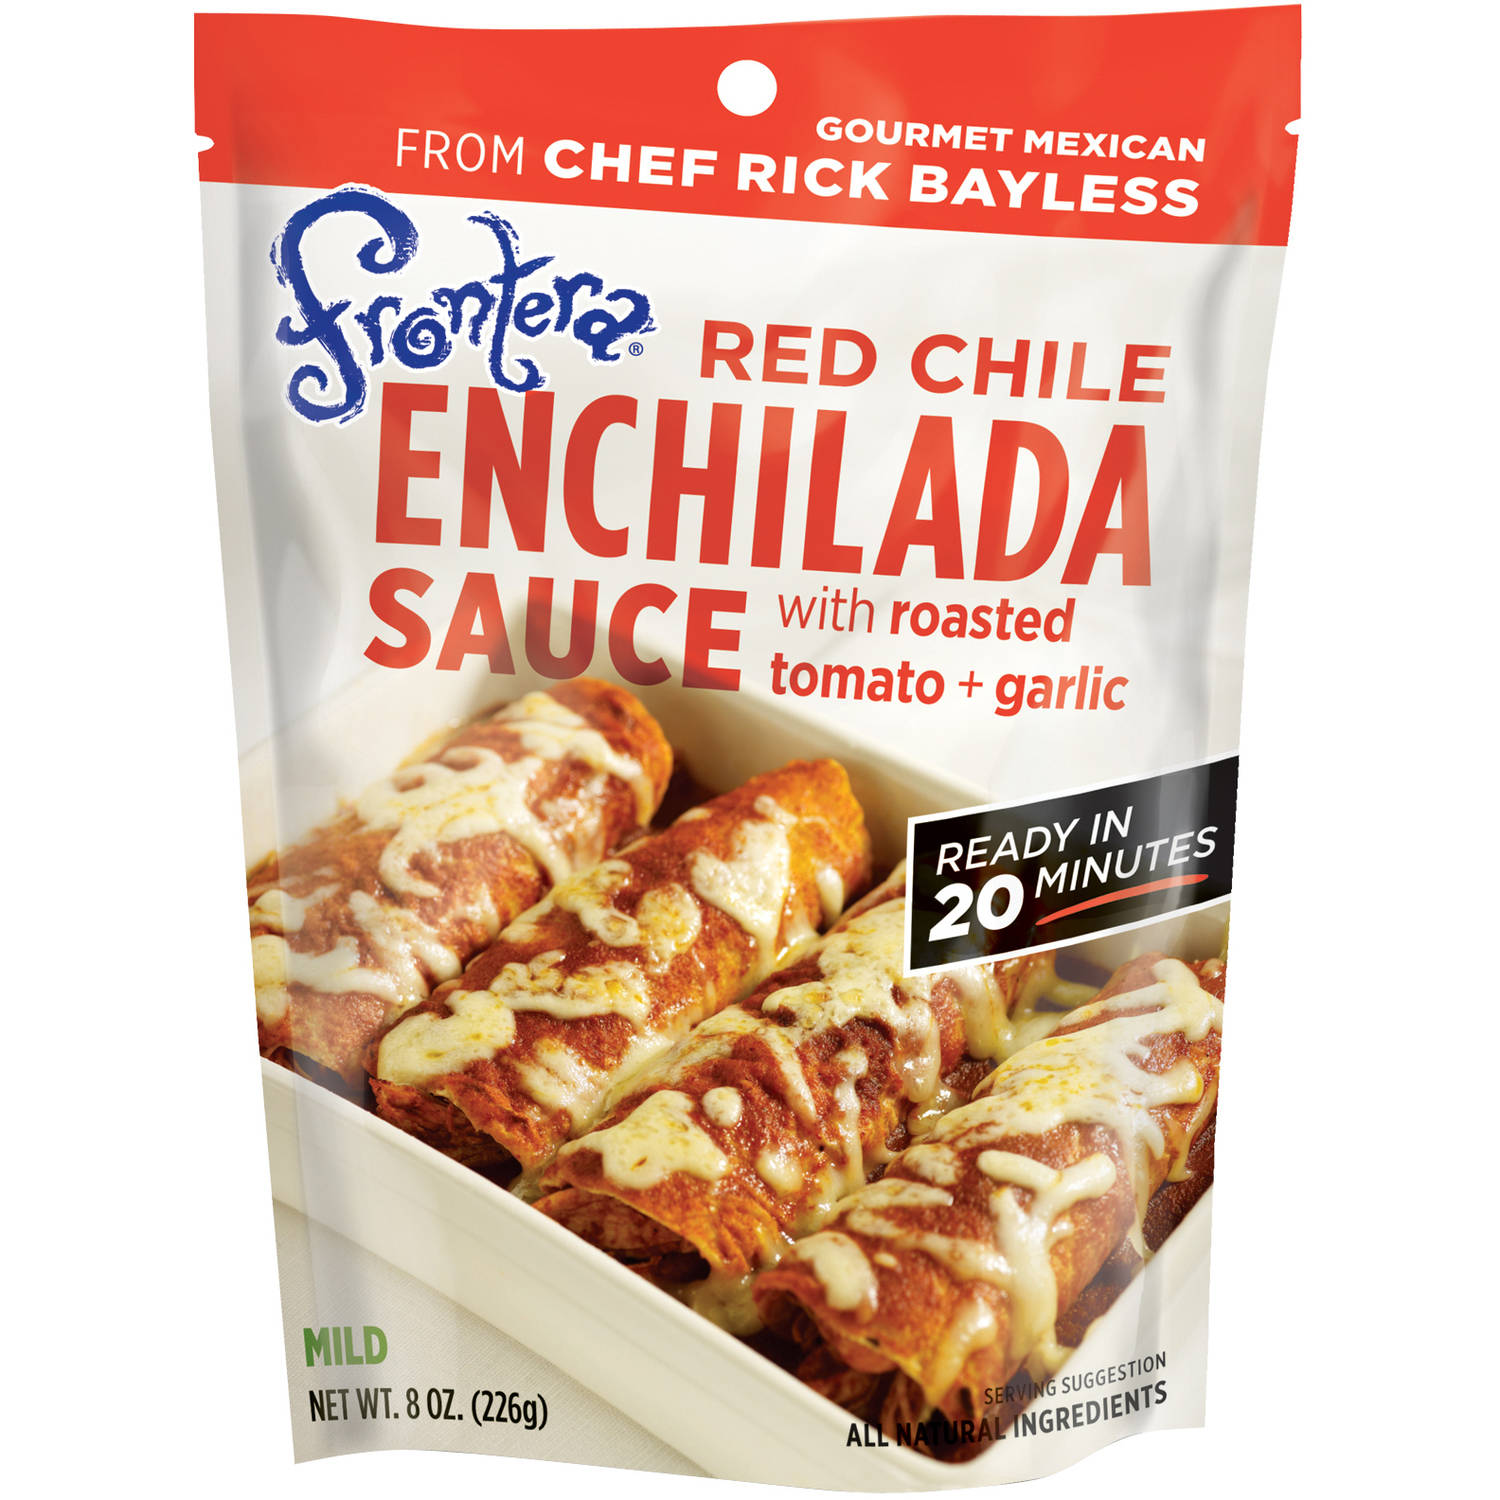 Frontera Red Chile Enchilada Sauce with Roasted Tomato + Garlic, 8 oz